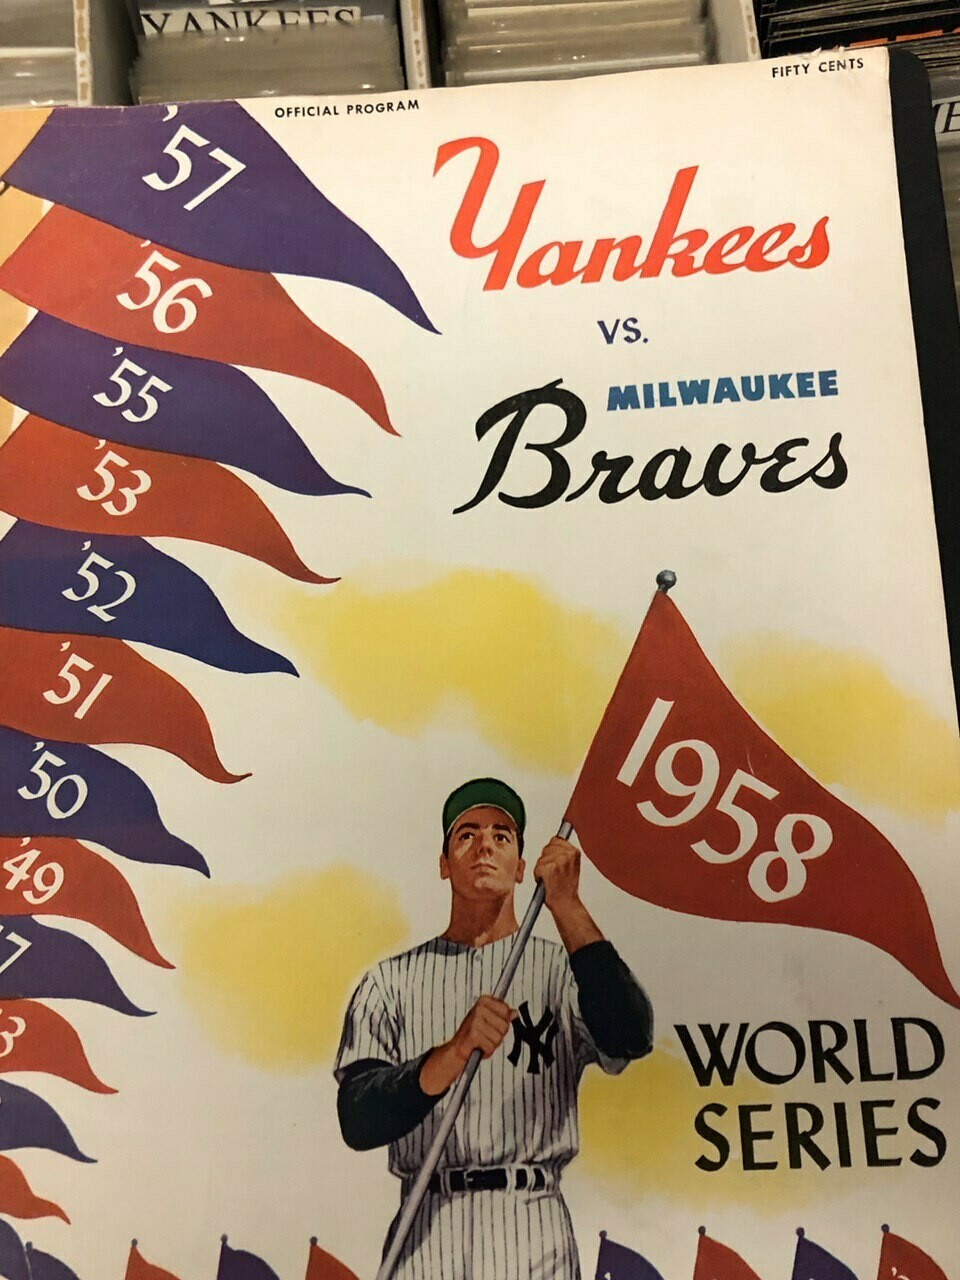 1958 World Series Program - NY Yankees vs. Milwaukee Braves